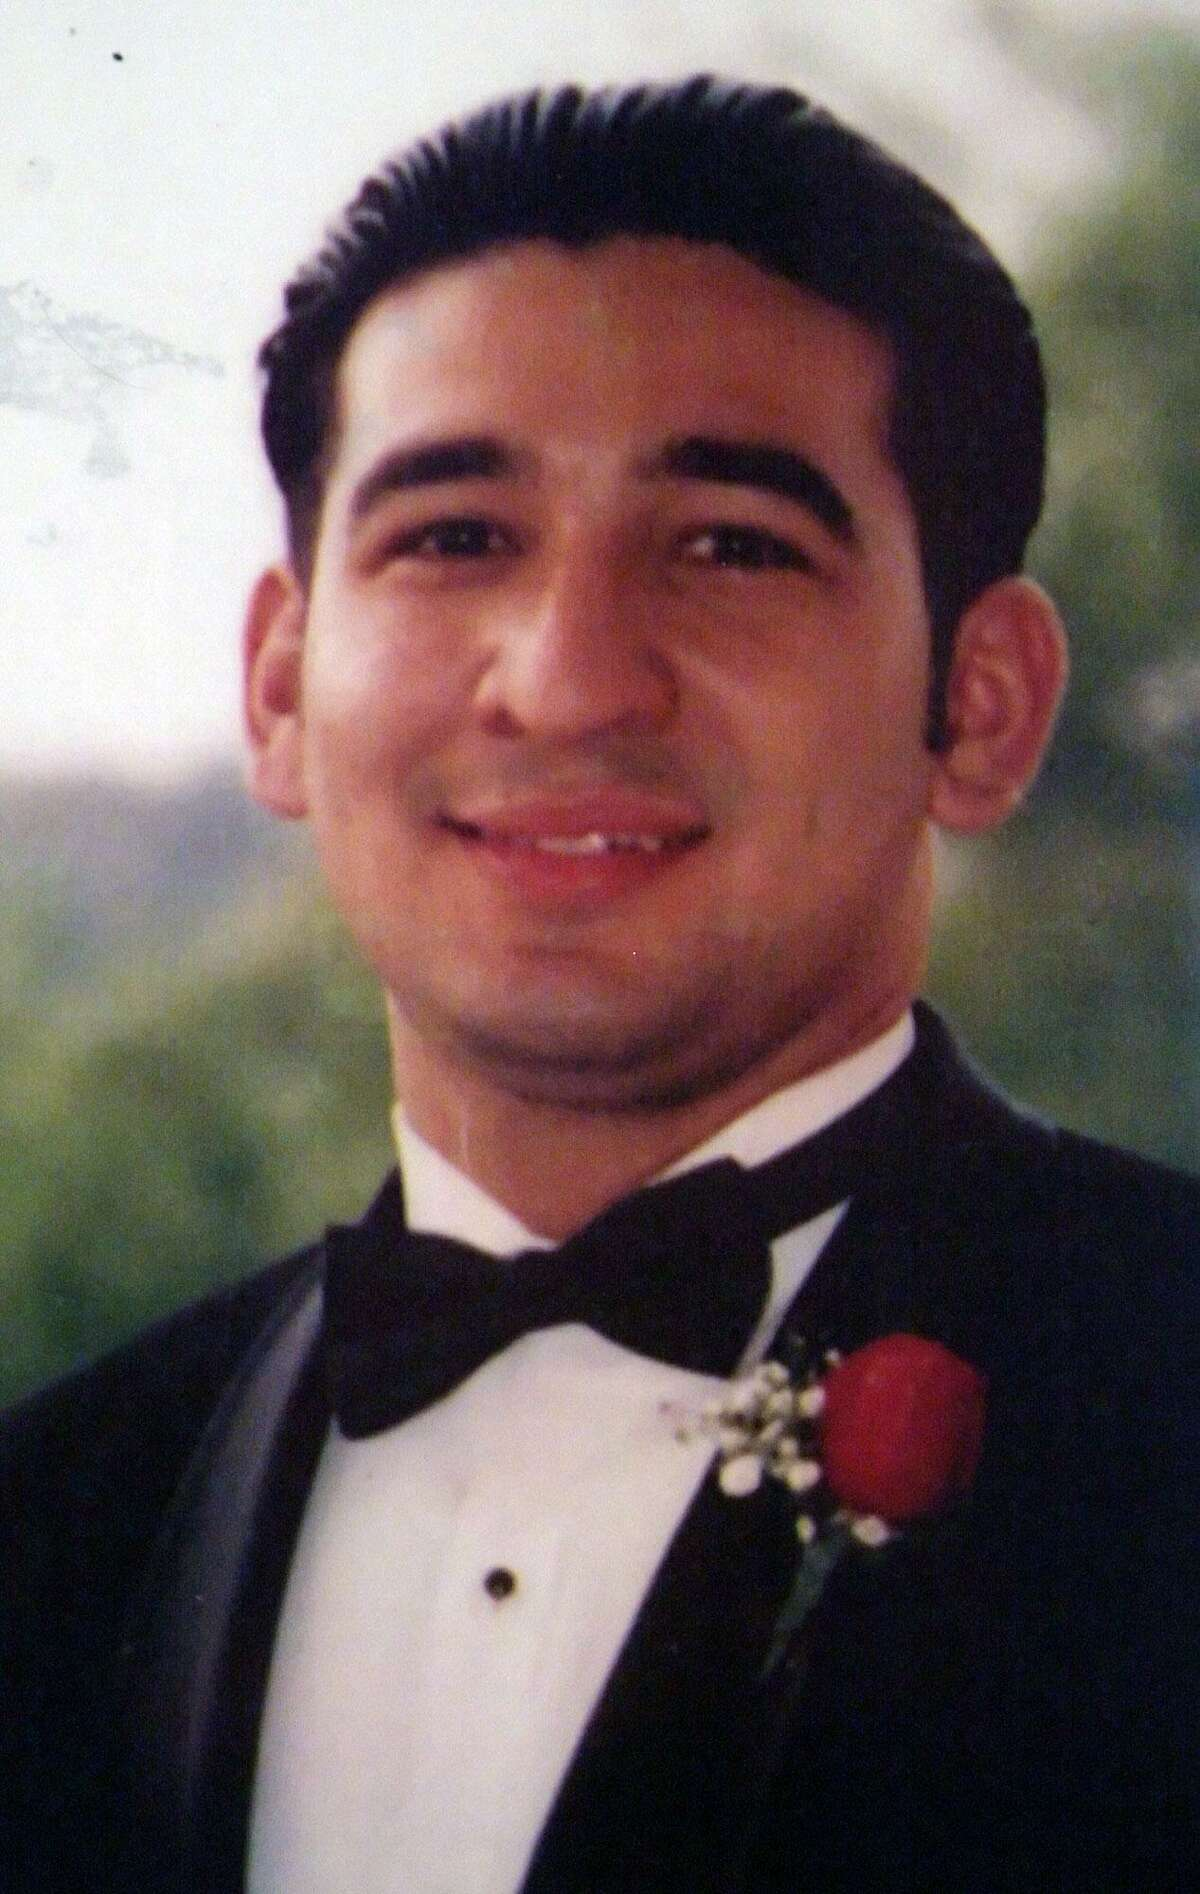 Michael LaHood Jr. was shot to death in the driveway of his parents' San Antonio home. He was the older brother of Bexar County District Attorney Nico LaHood.